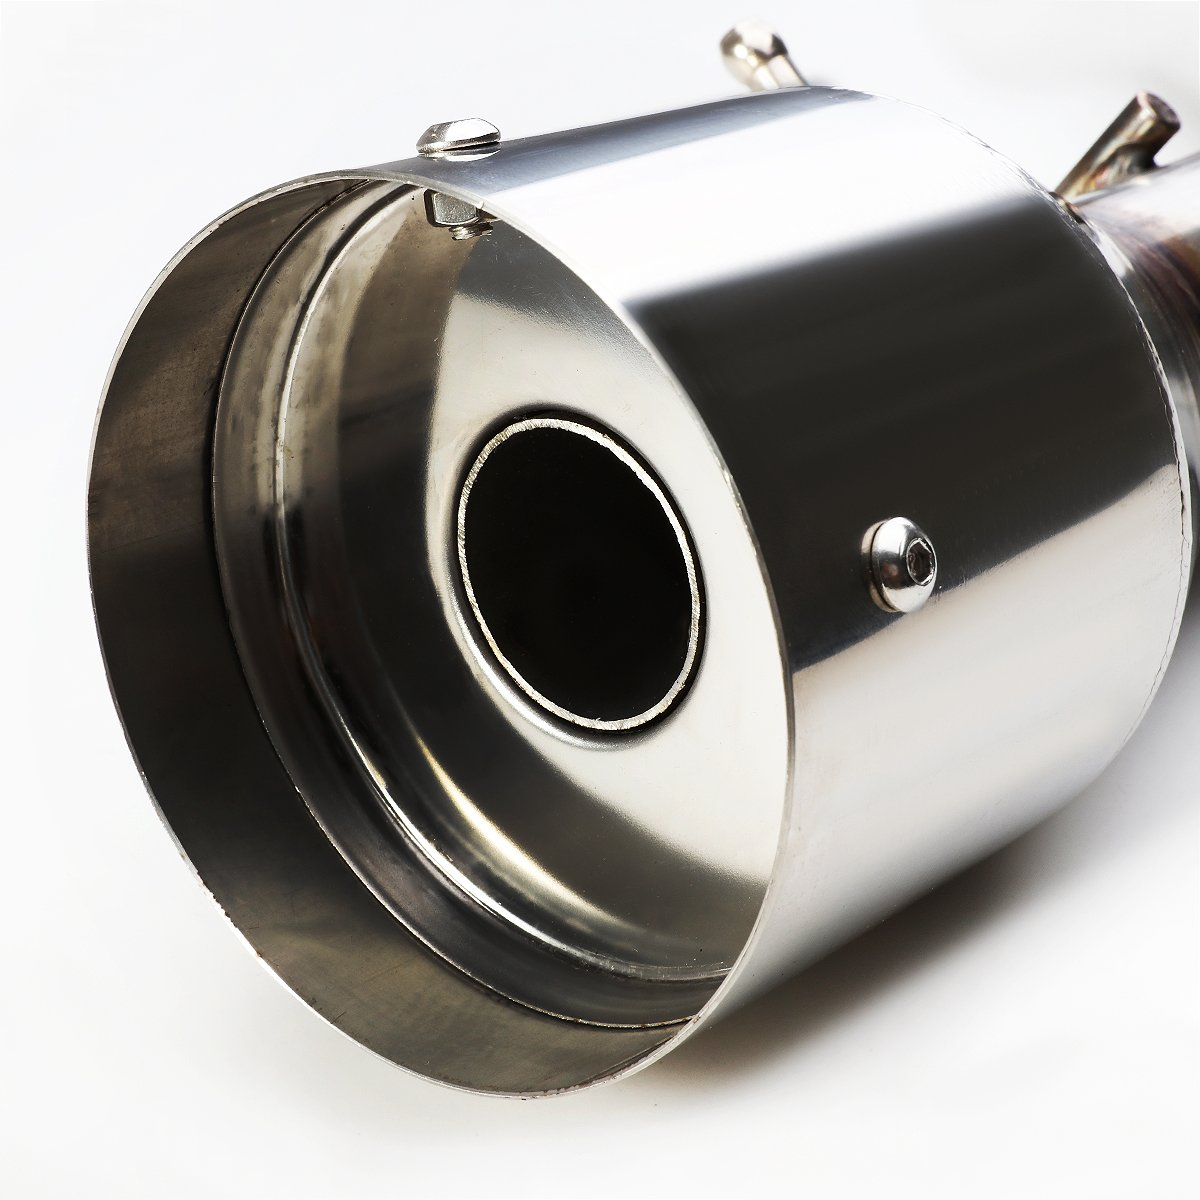 For Ford Focus Catback Exhaust System 45 Tip Muffler With Zetec Engine On Diagram Of 2003 Zx5 Zx3 20l 23l Automotive